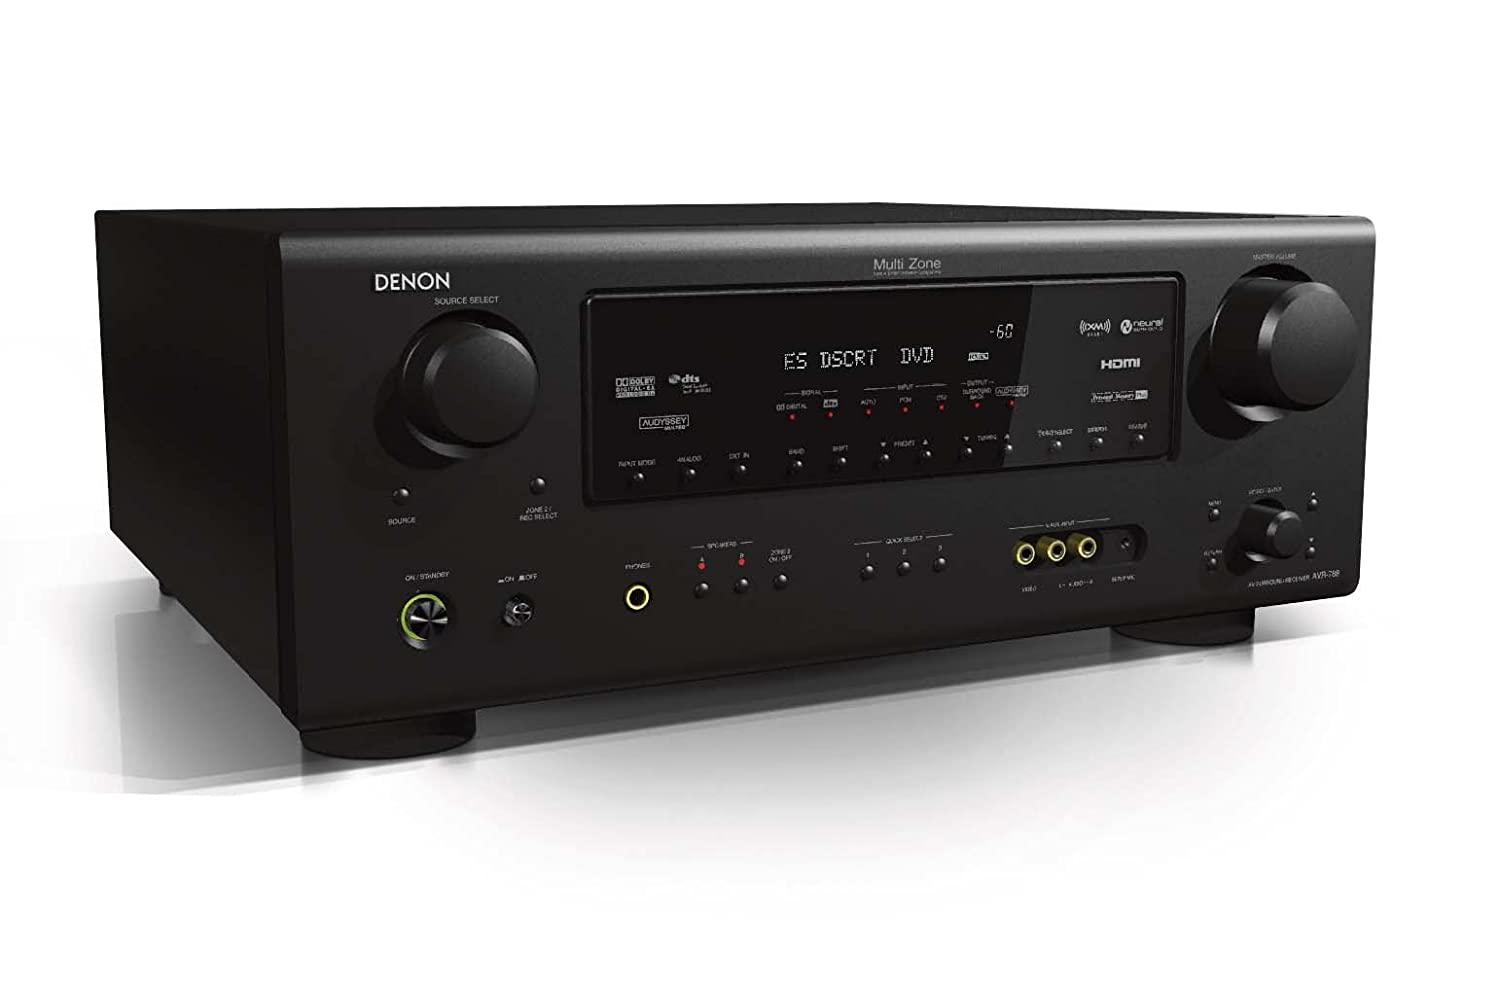 Amazon.com: Denon AVR-788 Dolby Digital Surround Receiver (Discontinued by  Manufacturer): Home Audio & Theater